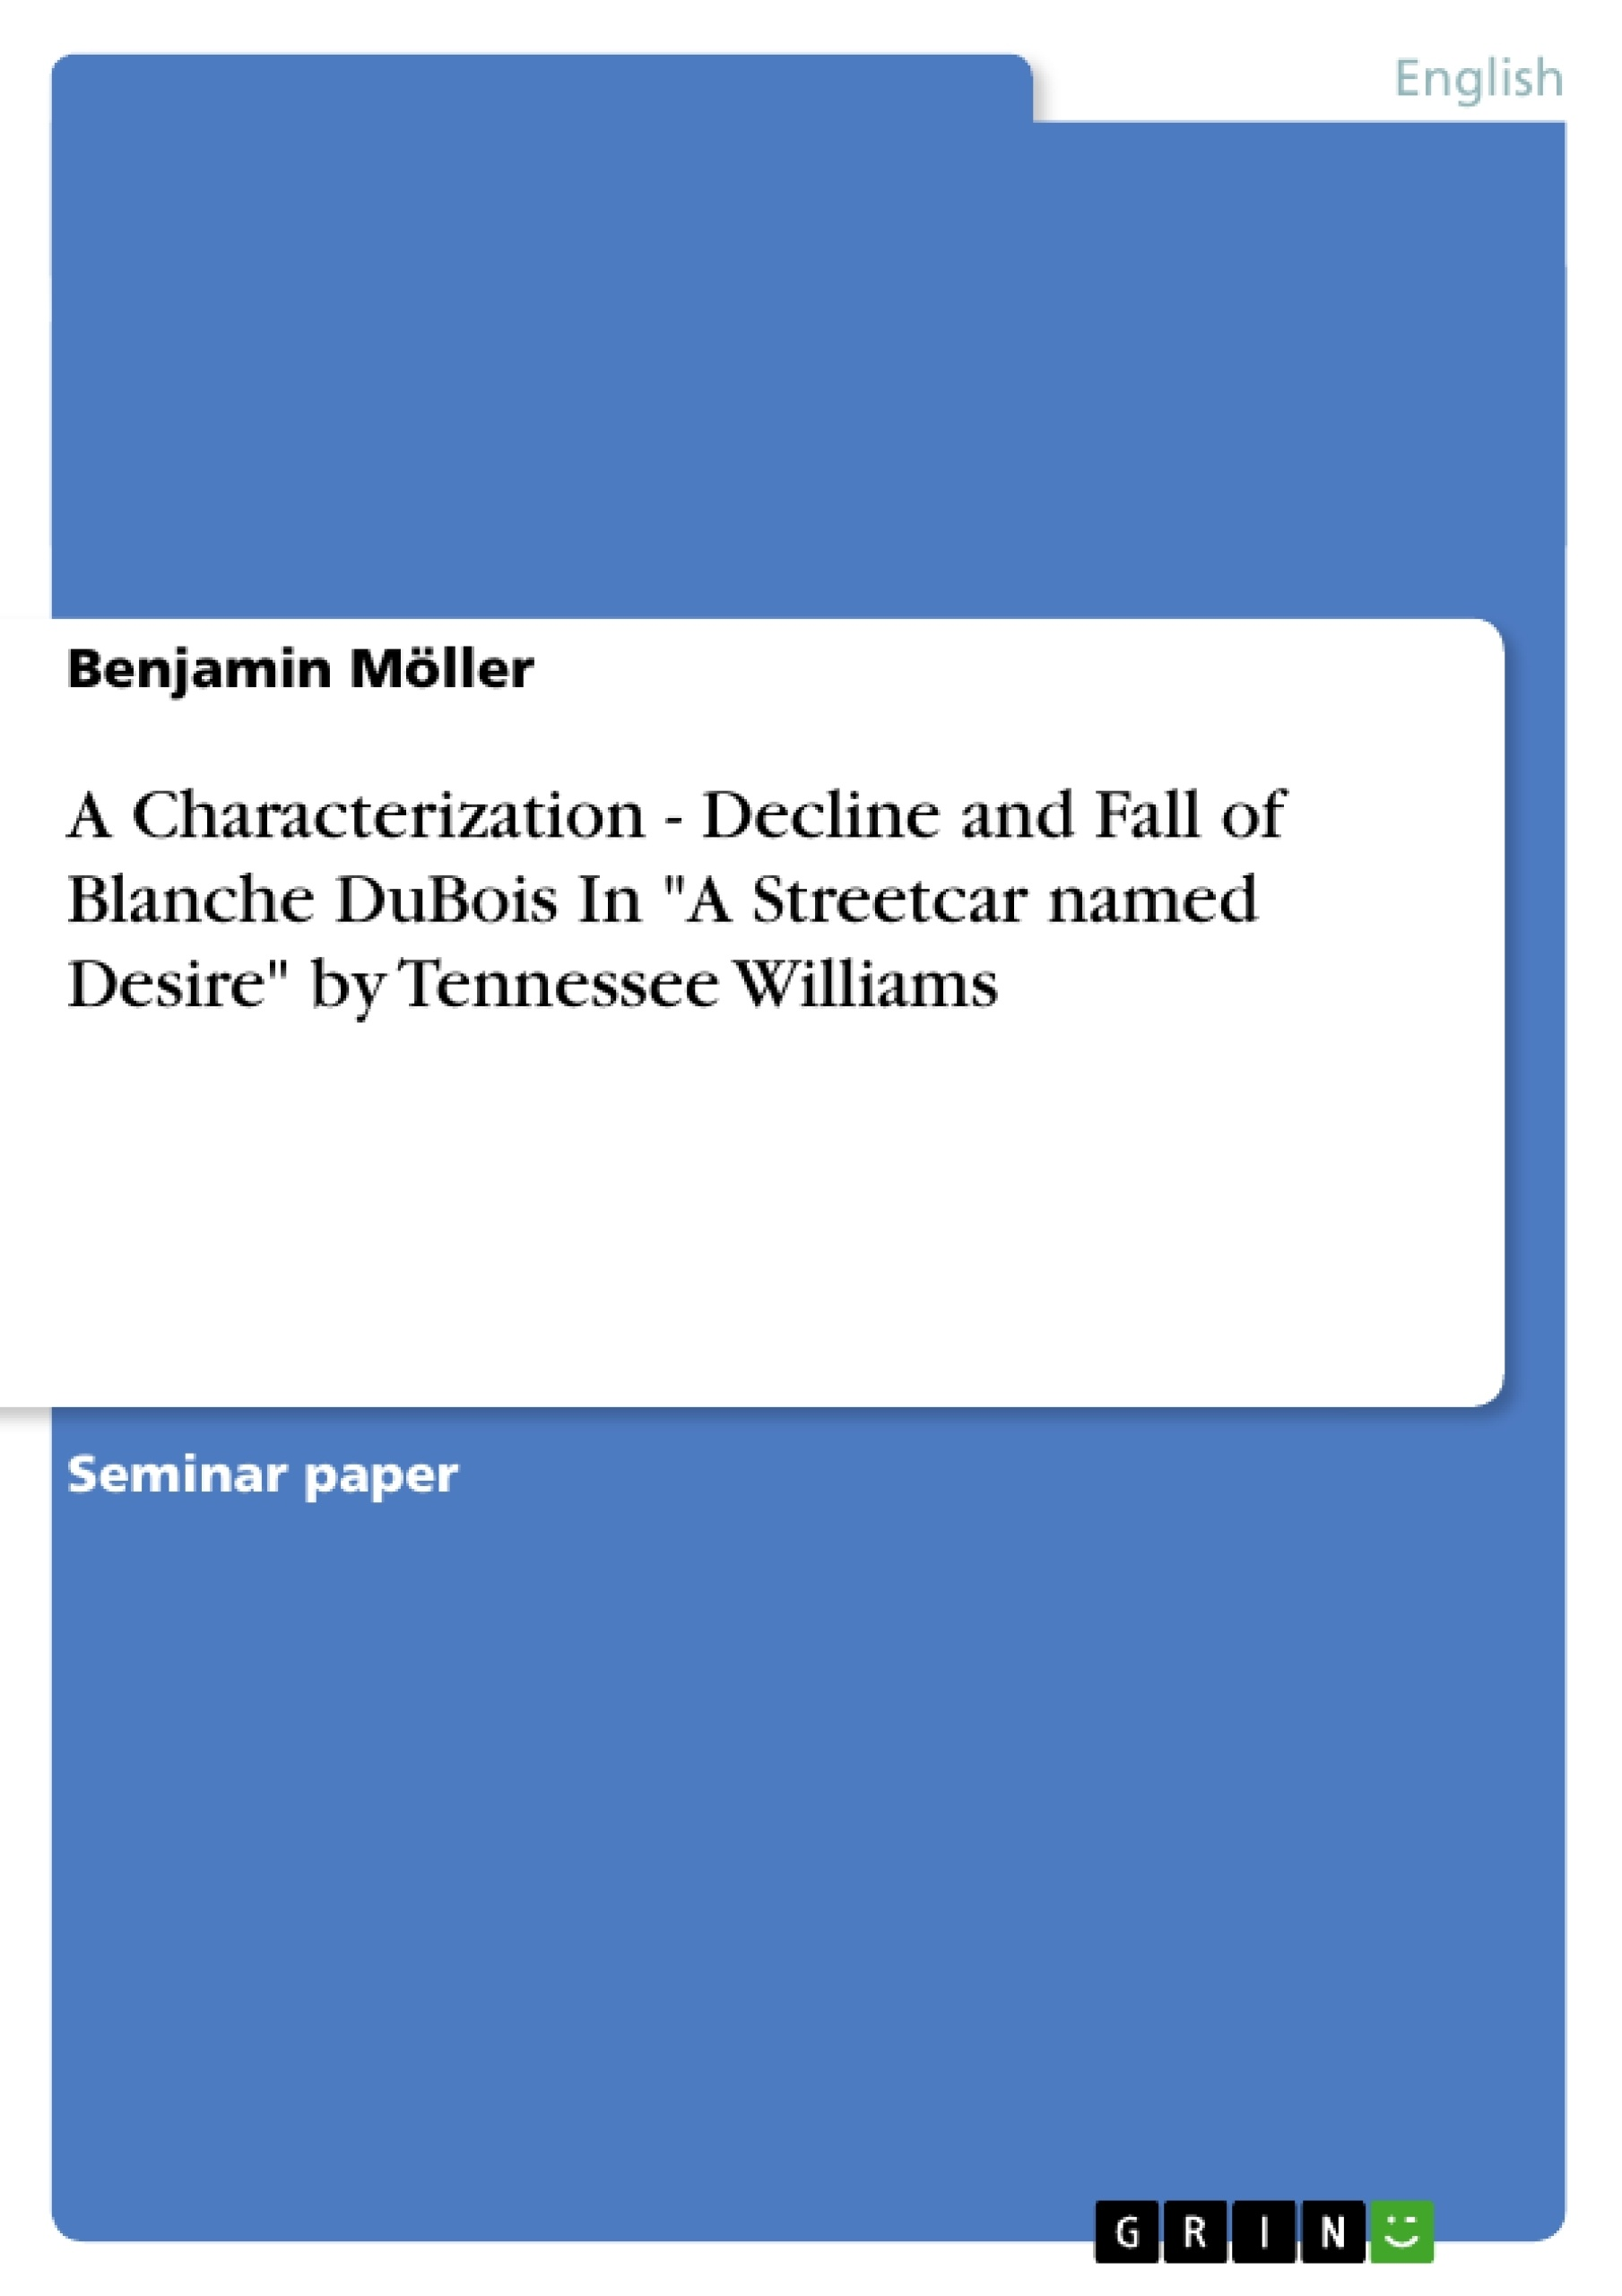 """Title: A Characterization - Decline and Fall of Blanche DuBois In """"A Streetcar named Desire"""" by Tennessee Williams"""